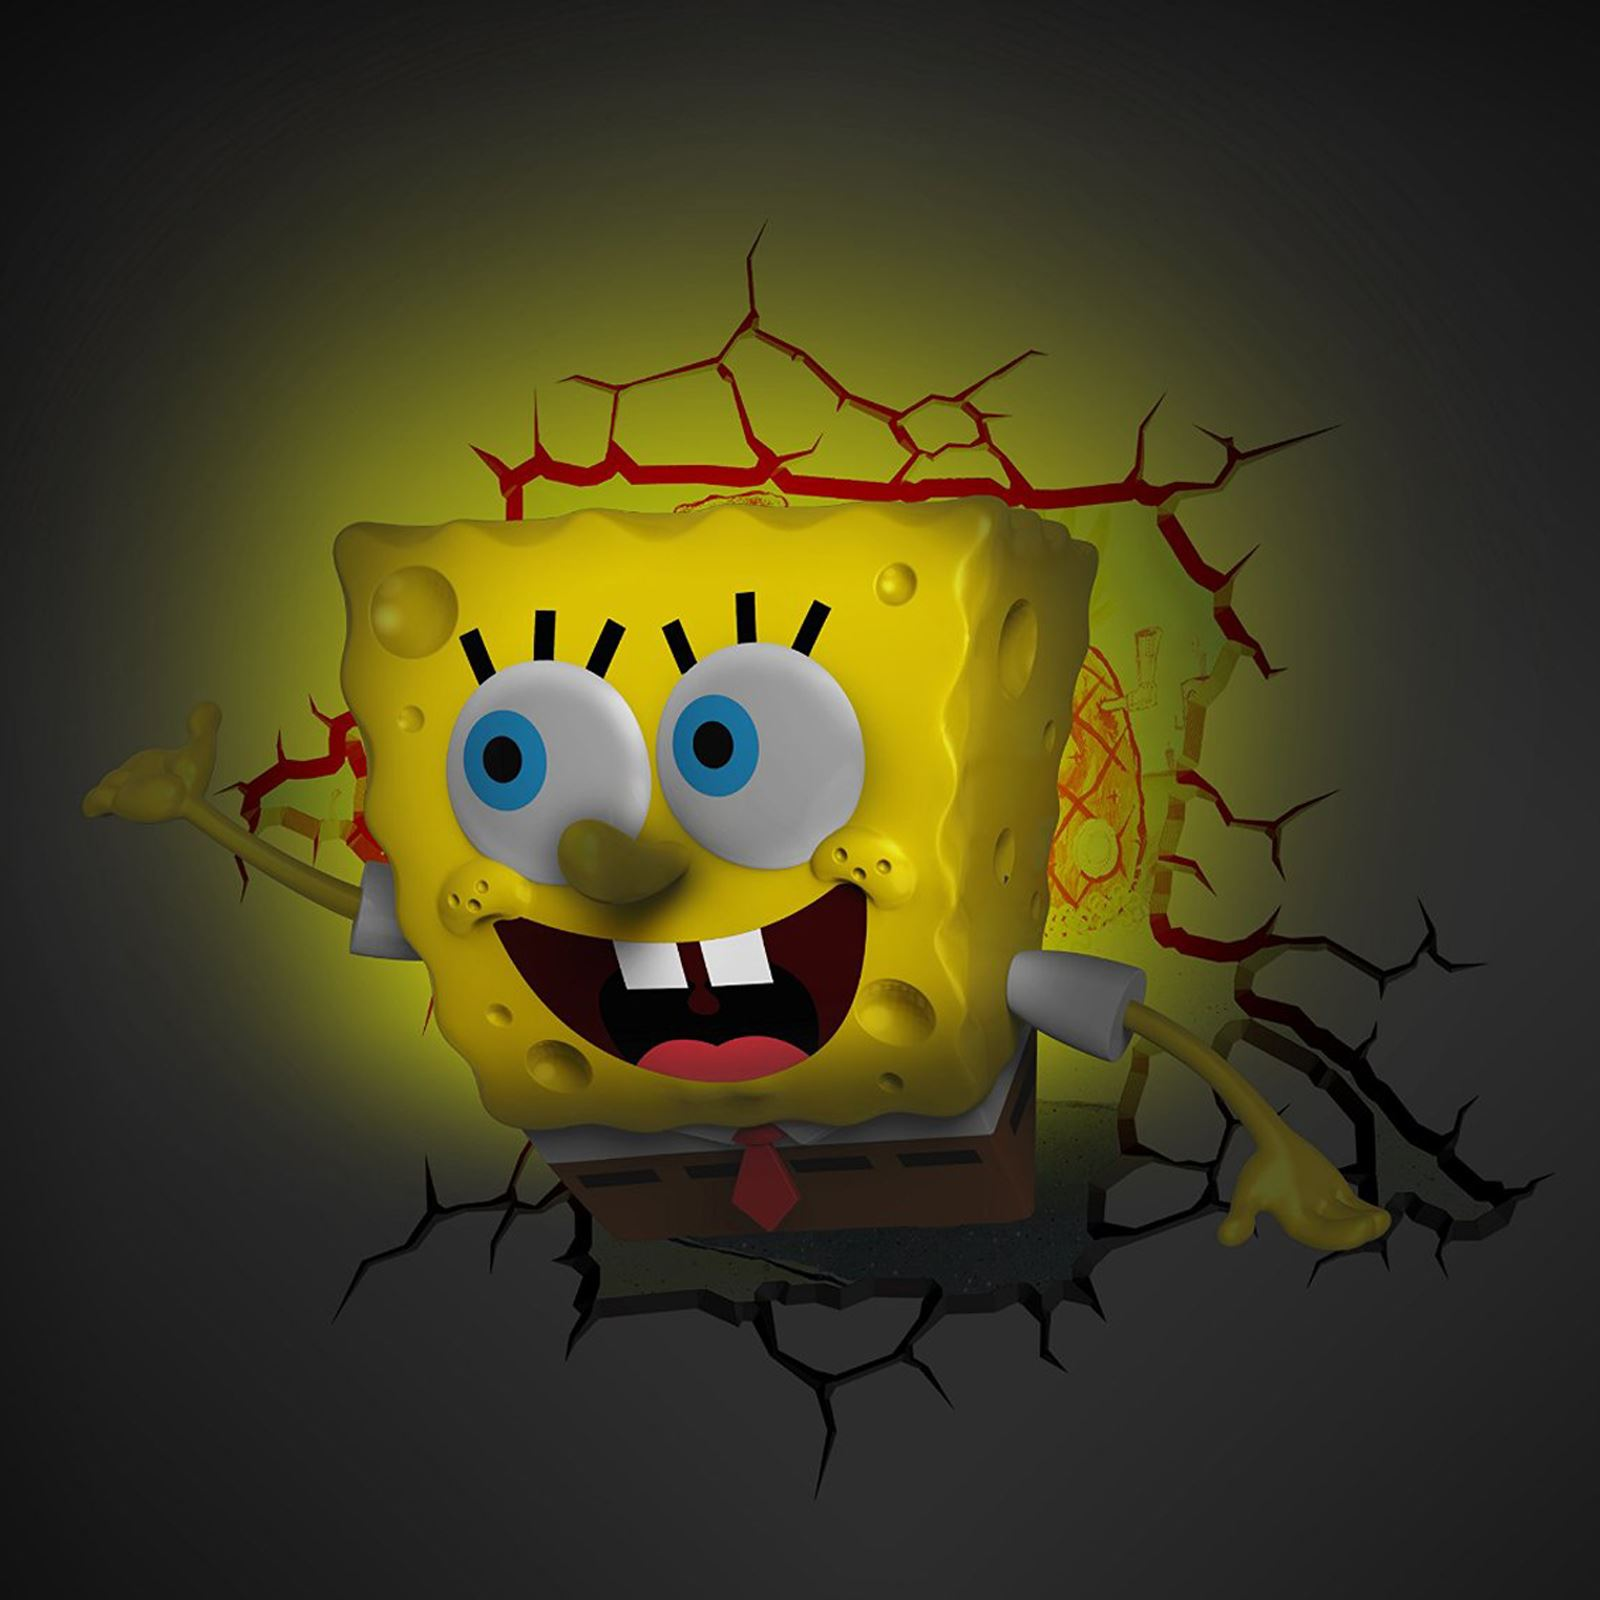 SPONGEBOB SQUAREPANTS 3D LED DECO WALL LIGHT + CRACK STICKERS NEW | eBay